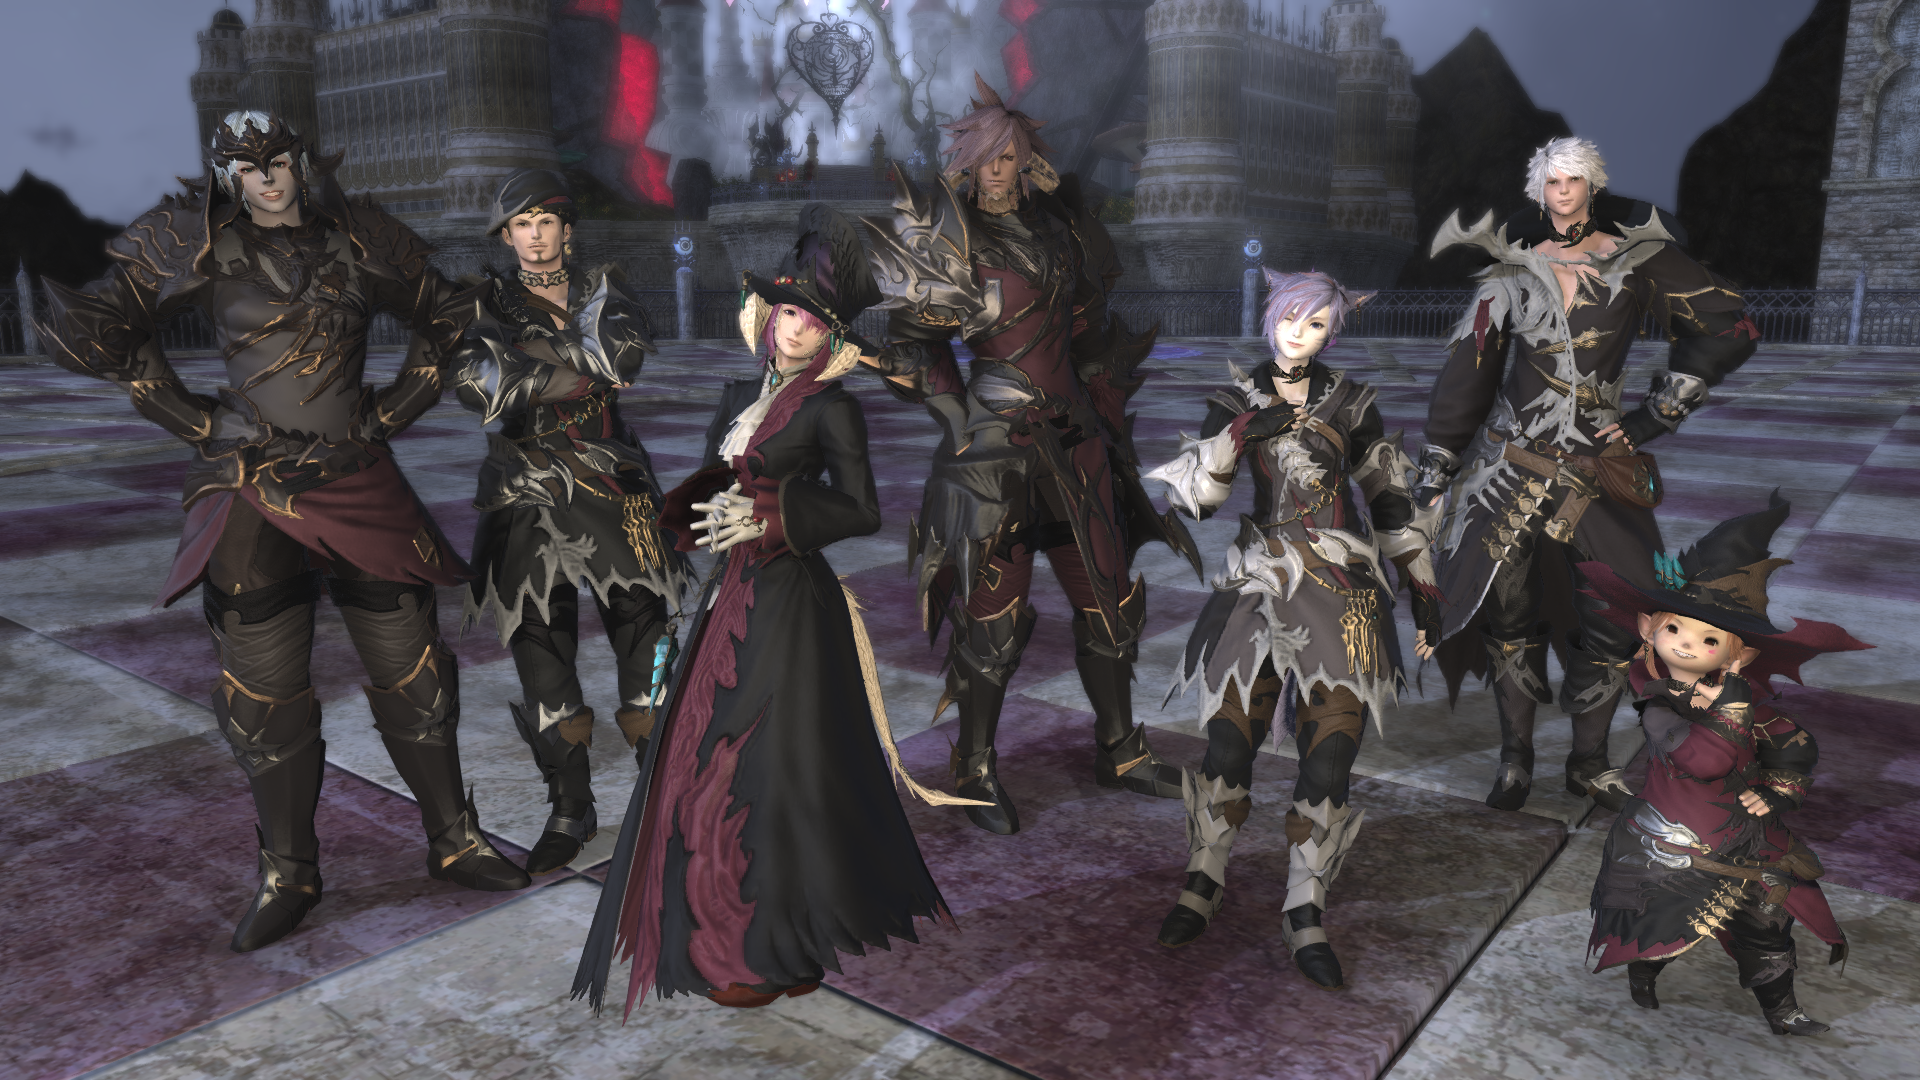 Final Fantasy 14 Patch 3.5 The Far Edge of Fate Showcased in New Trailer